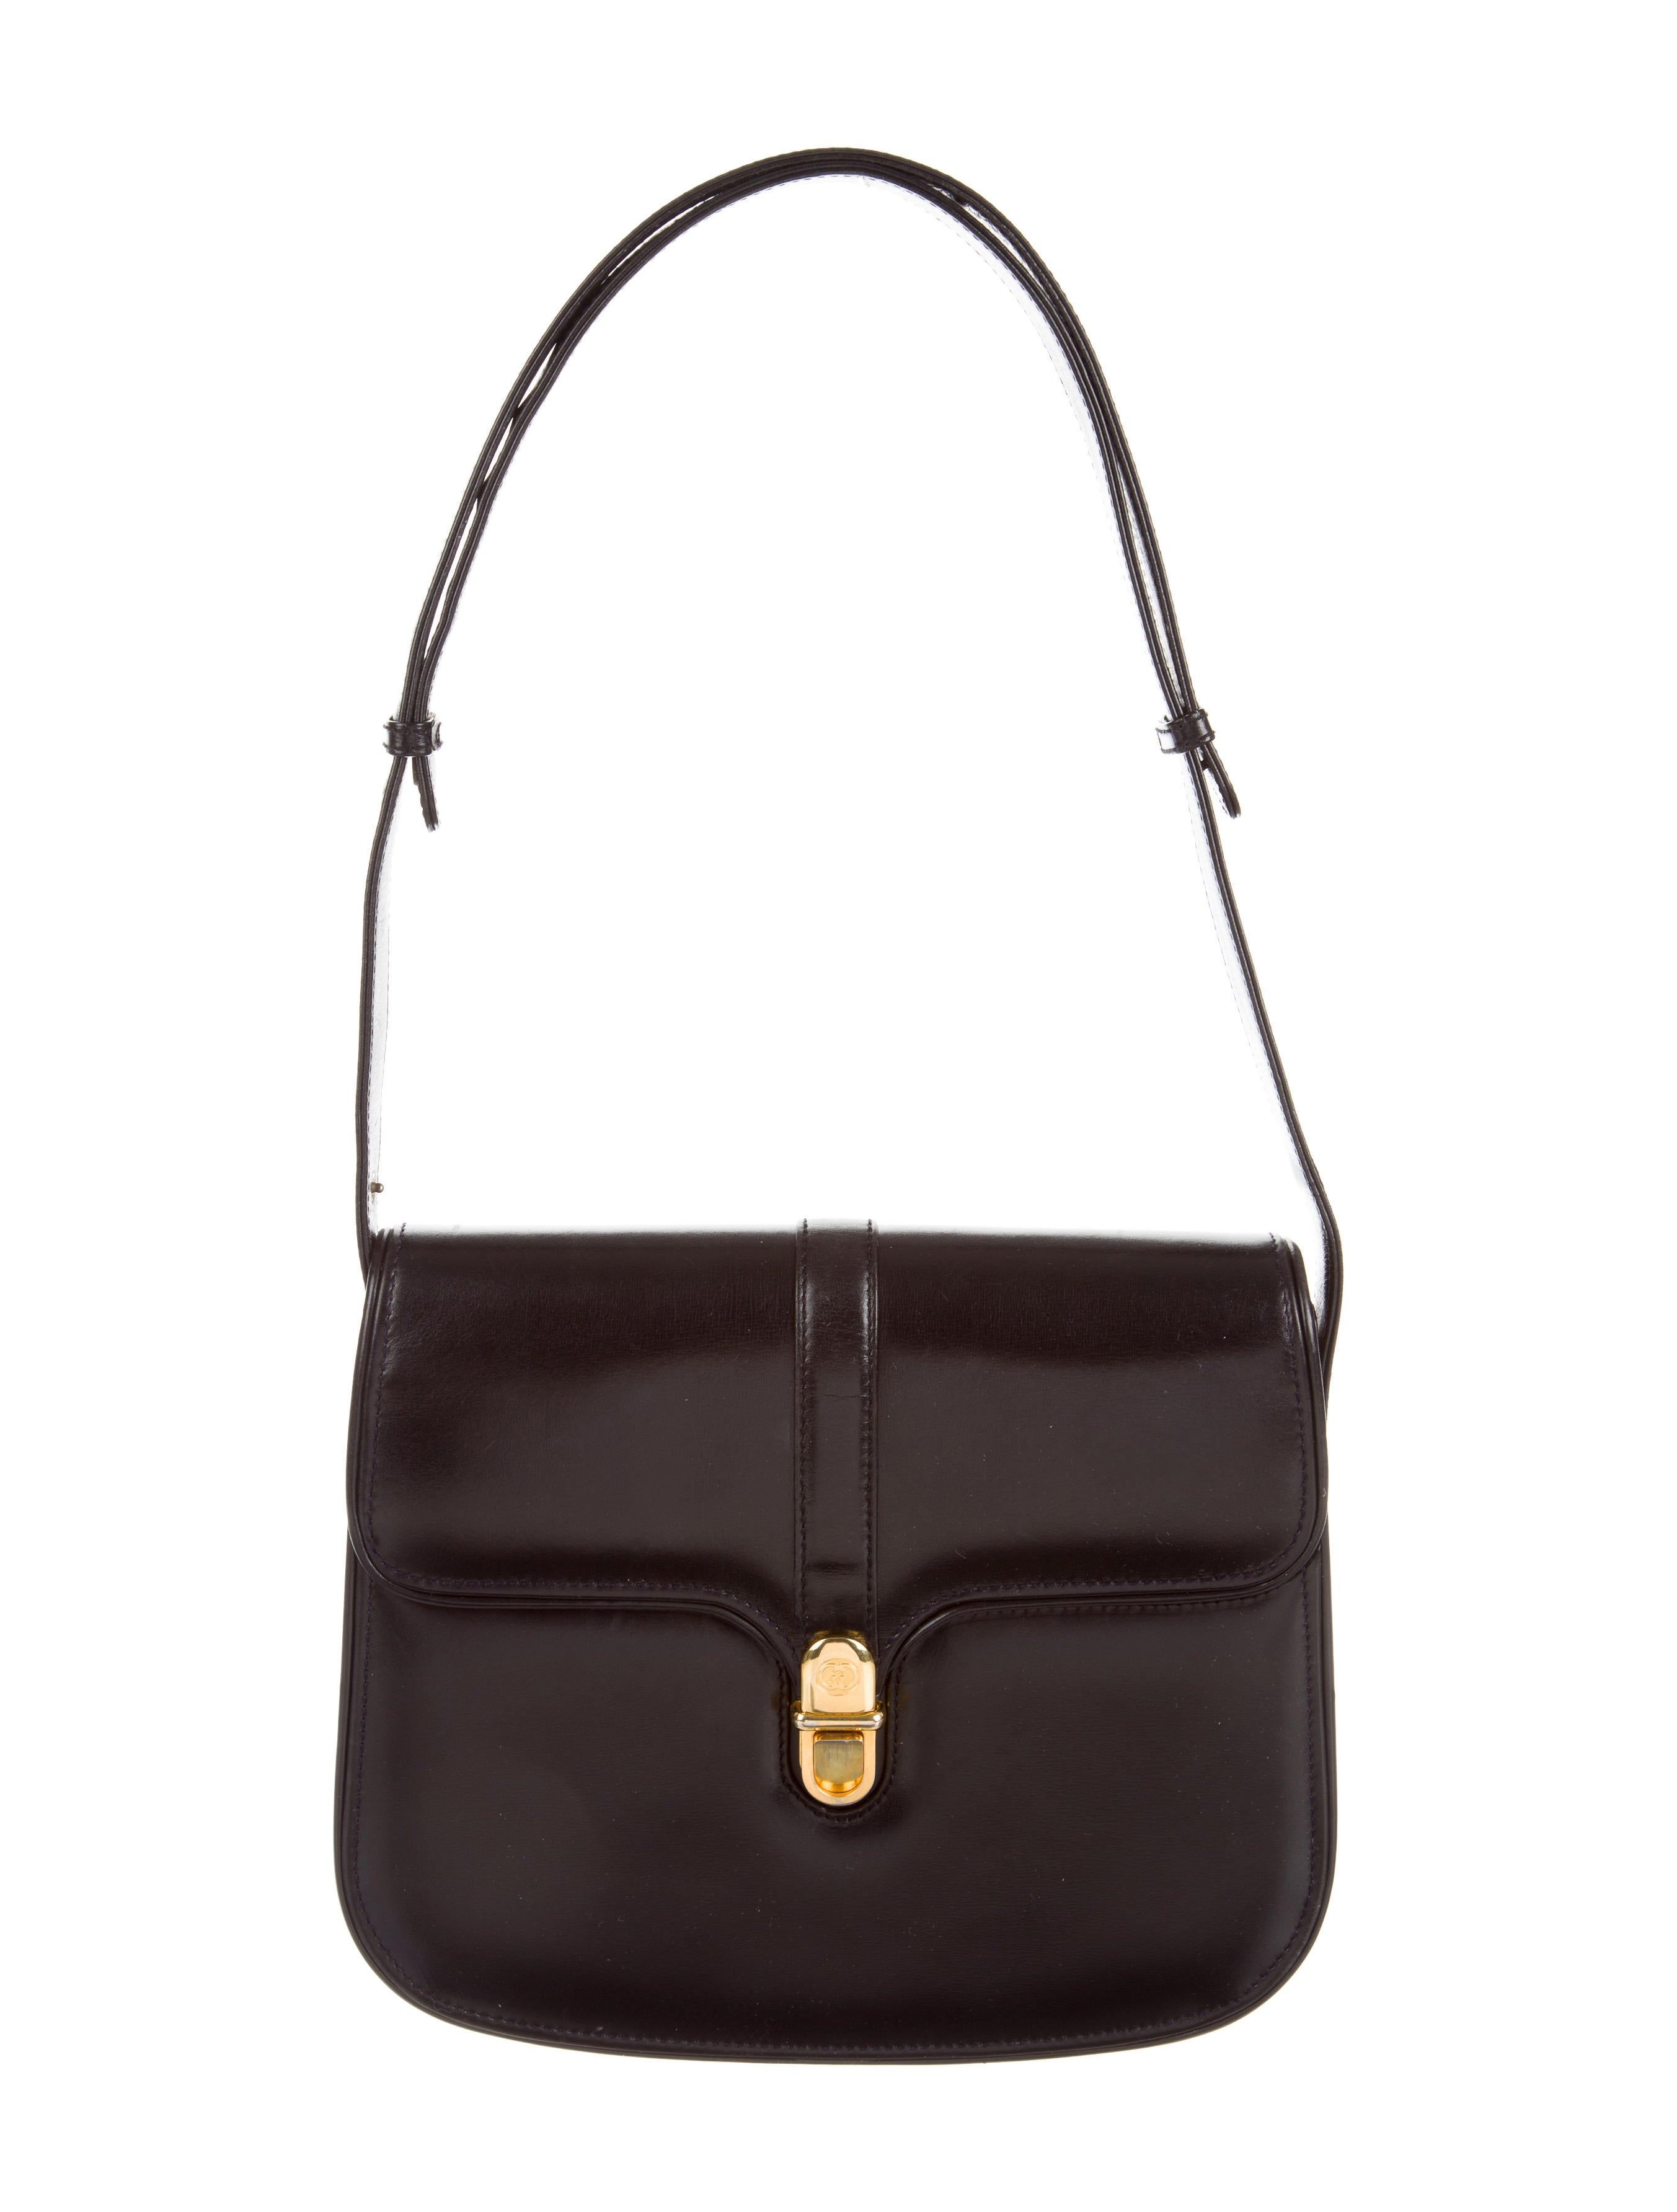 f7a31f5e02bc Vintage Leather Gucci Bag - R90659 | Stanford Center for Opportunity ...